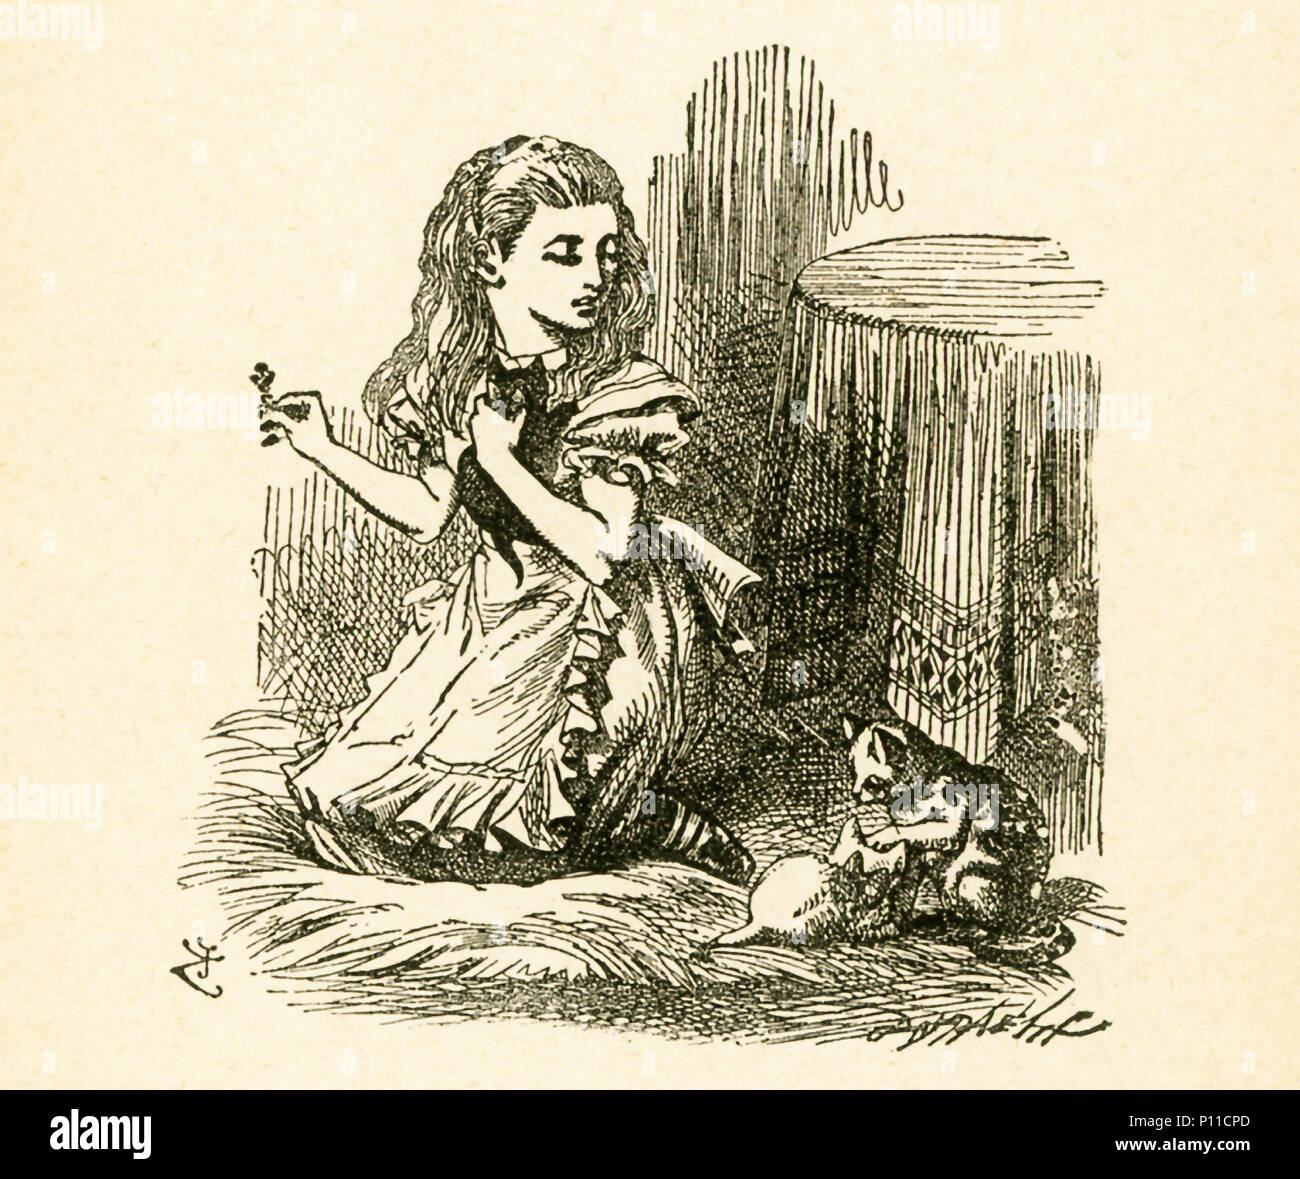 This illustration showing Alice back home and playing with kittens is from 'Through the Looking-Glass and What Alice Found There' by Lewis Carroll (Charles Lutwidge Dodgson), who wrote this novel in 1871 as a sequel to 'Alice's Adventures in Wonderland.' - Stock Image